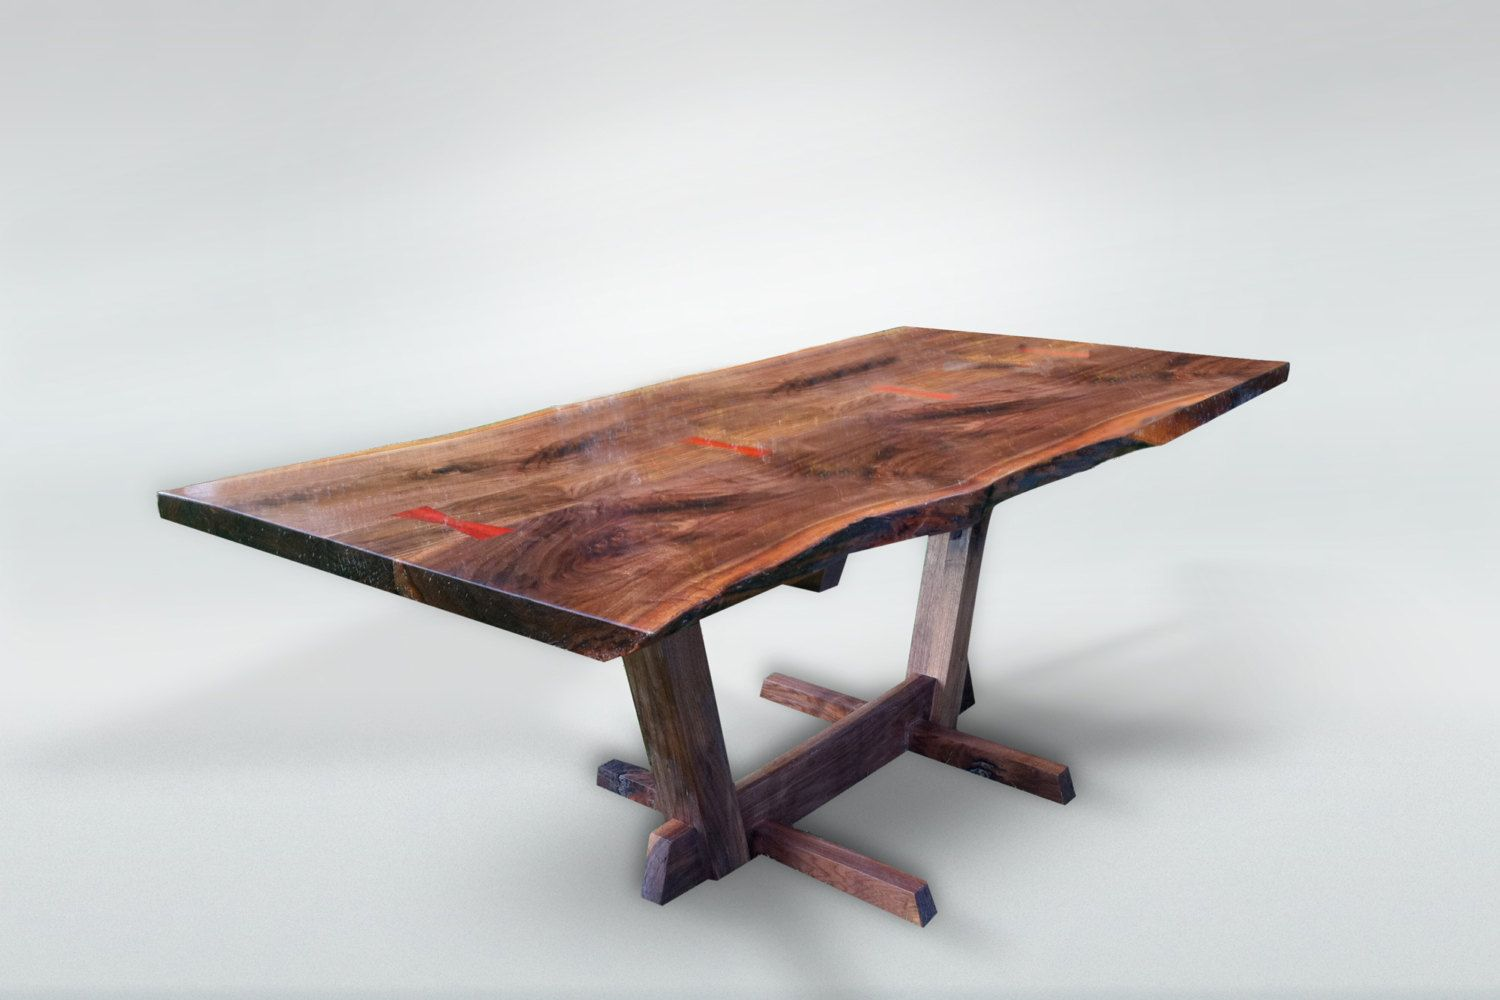 Nakashima Style Live Edge Dining Table By Awoodstudio On Etsy, $4,400.00